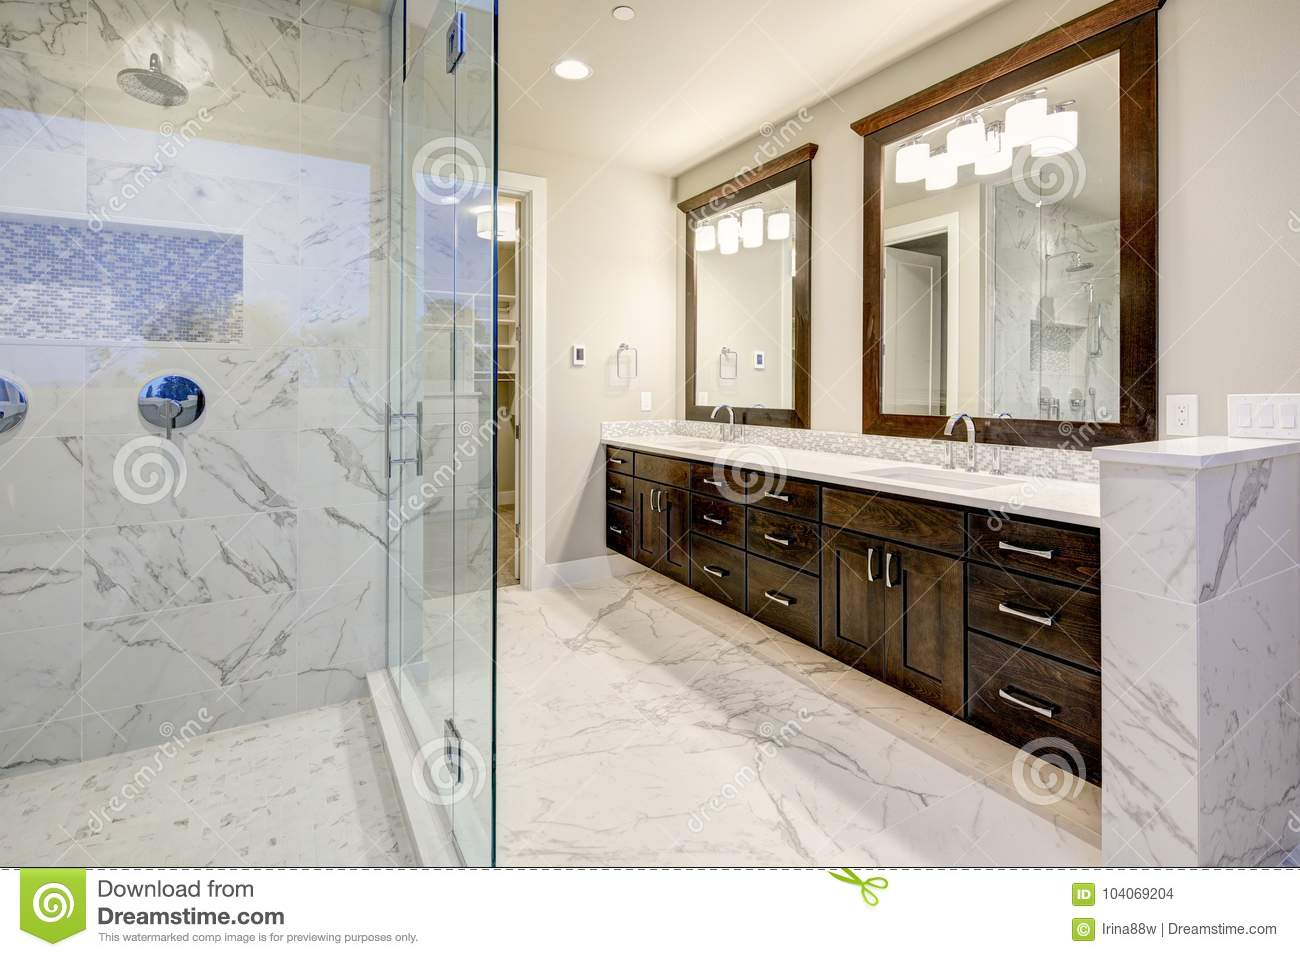 Bright and airy master bathroom features white modern double vanity with rich brown cabinets and marble walk in shower northwest usa